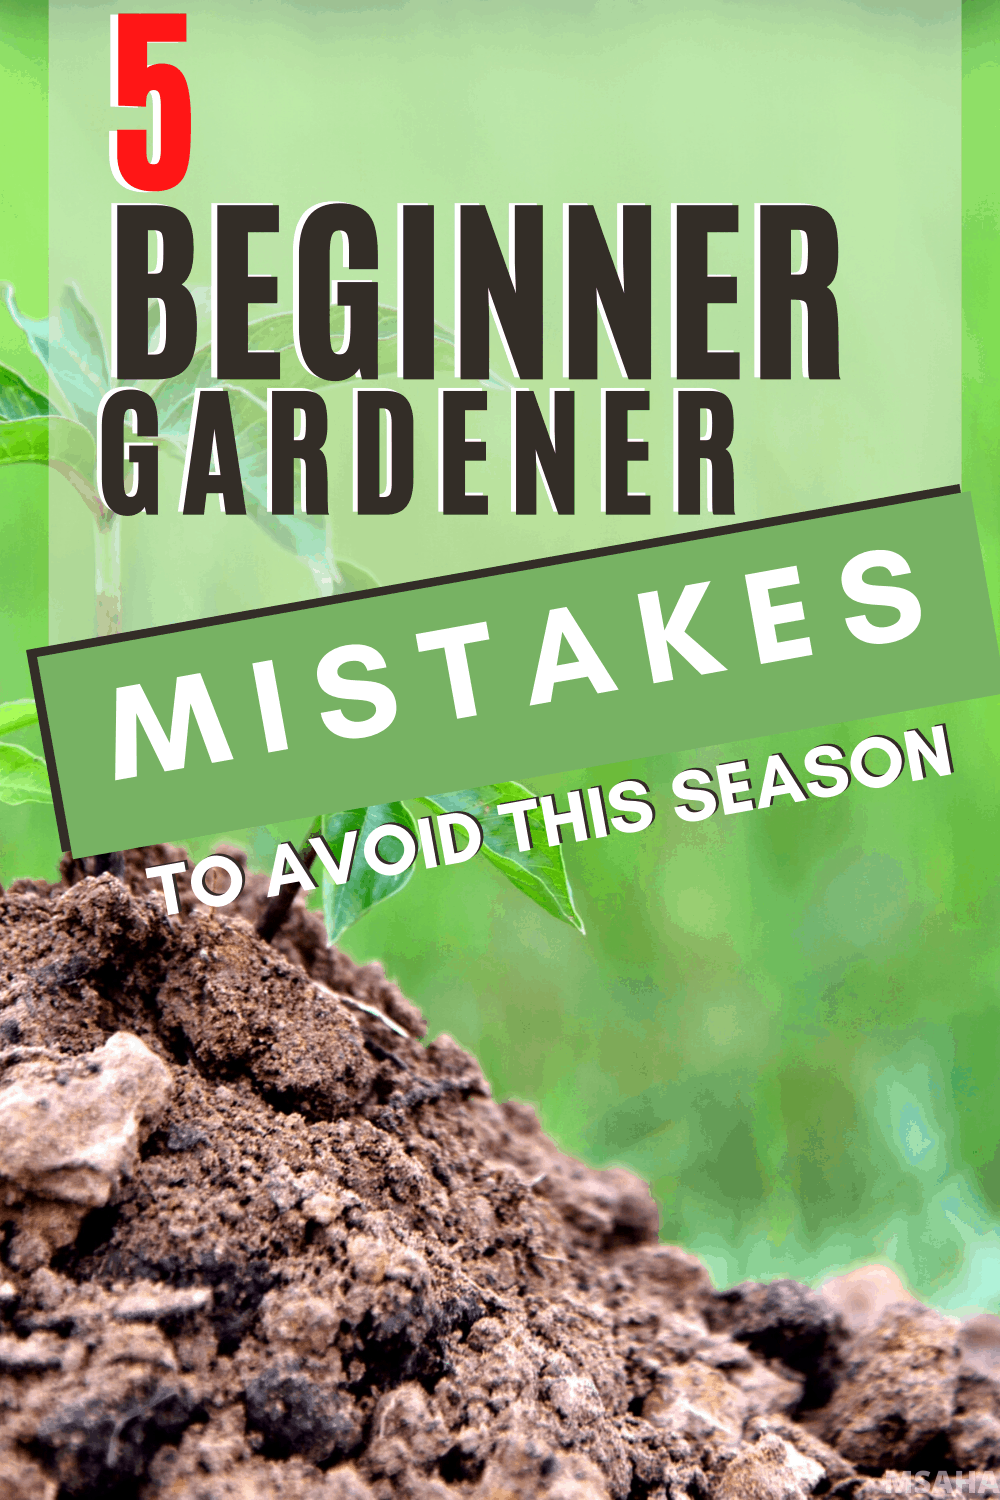 There are five first time gardener mistakes to avoid that we all do, and you can avoid. Learn what they are and what to do this gardening season instead. via @mystayathome